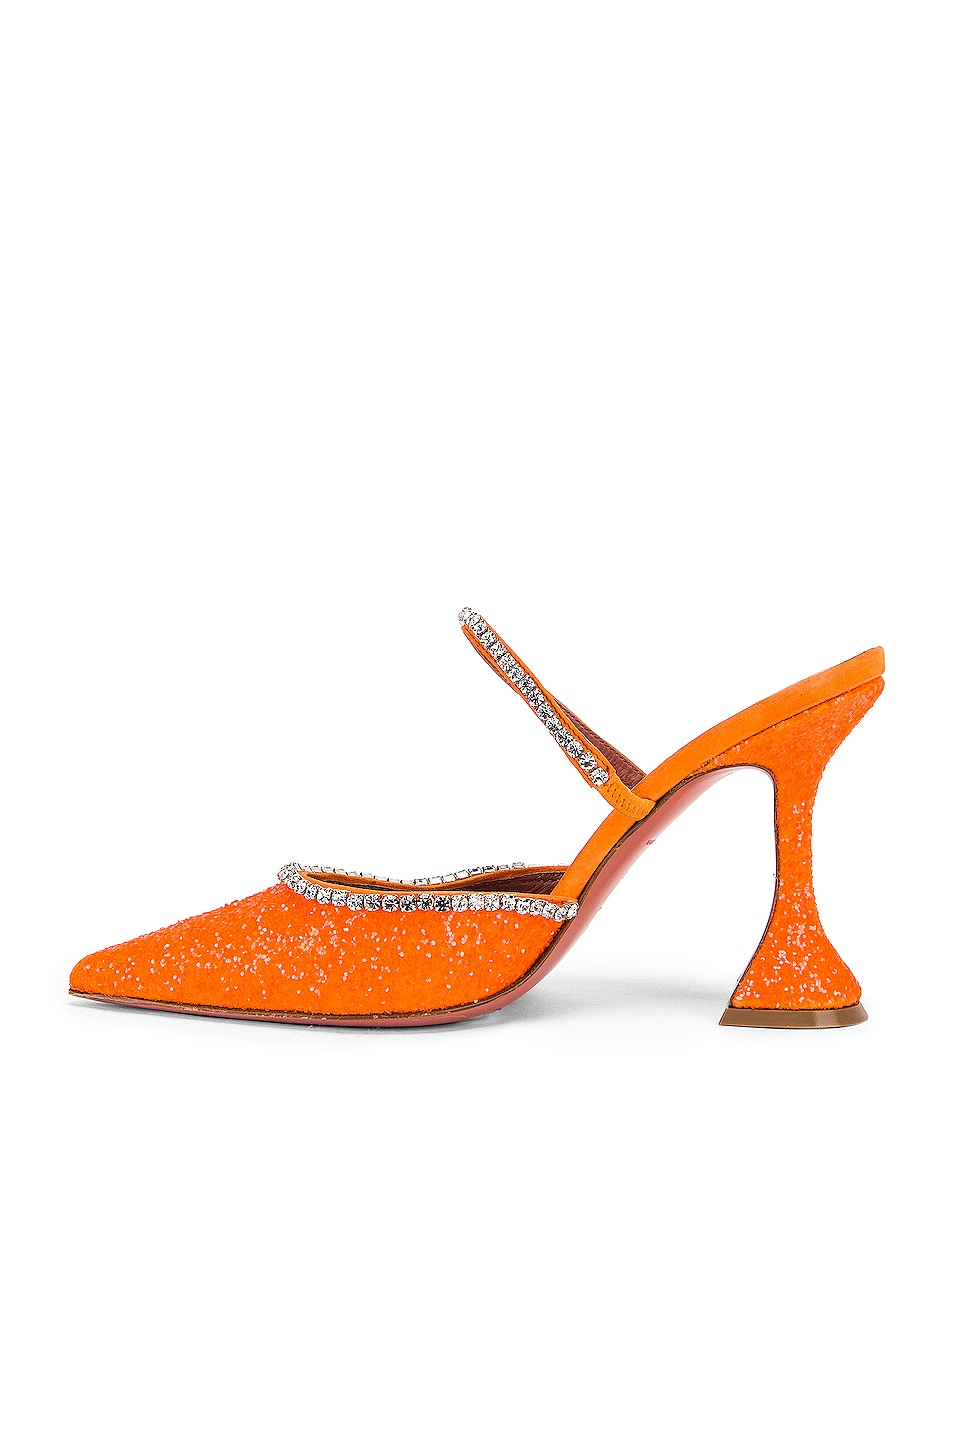 Image 5 of AMINA MUADDI Gilda Mule in Orange Fluo Glitter